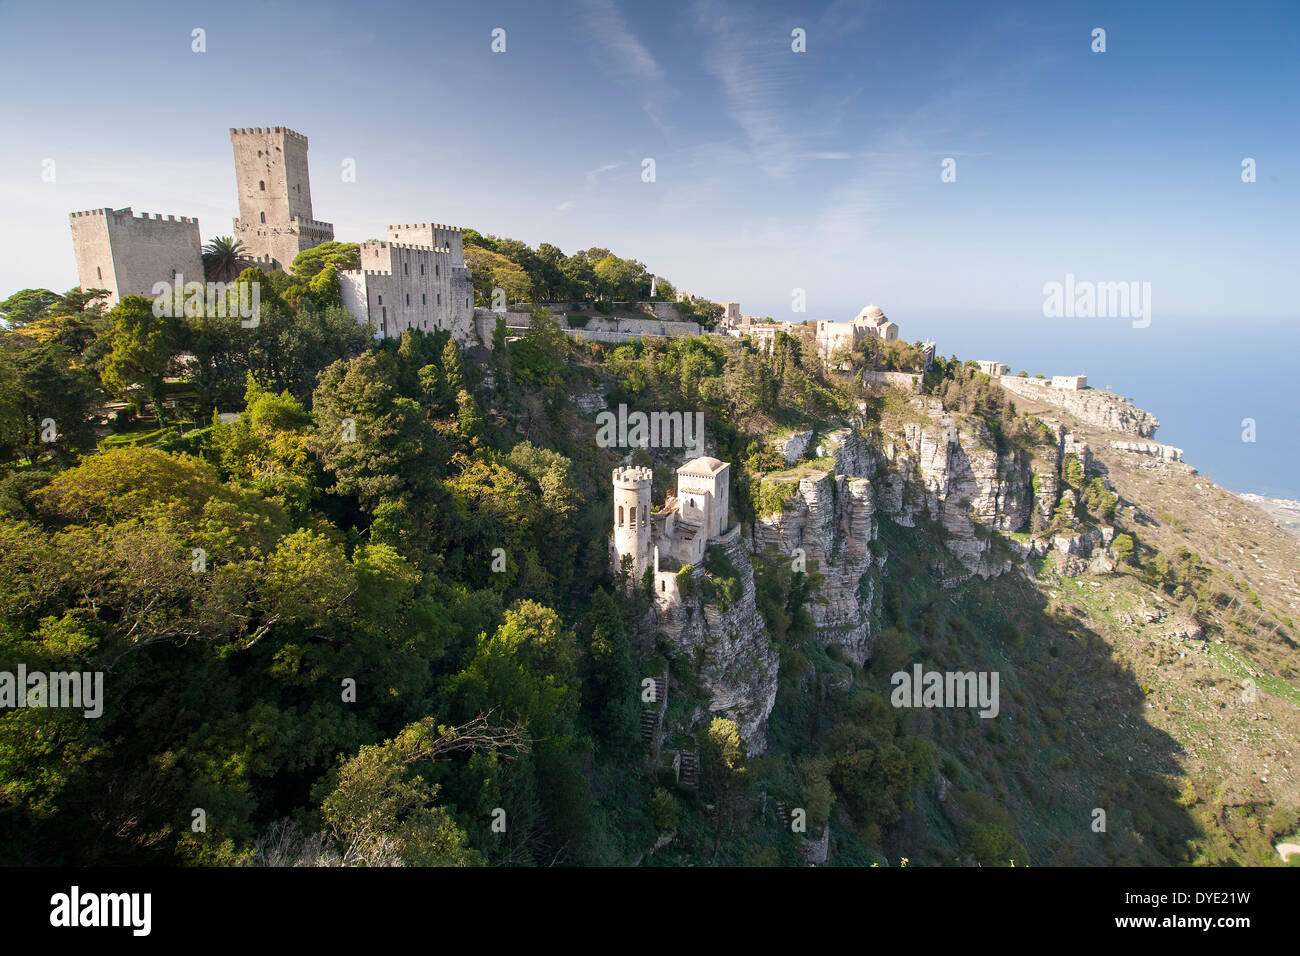 The castle at Erice in Sicily, Italy. - Stock Image